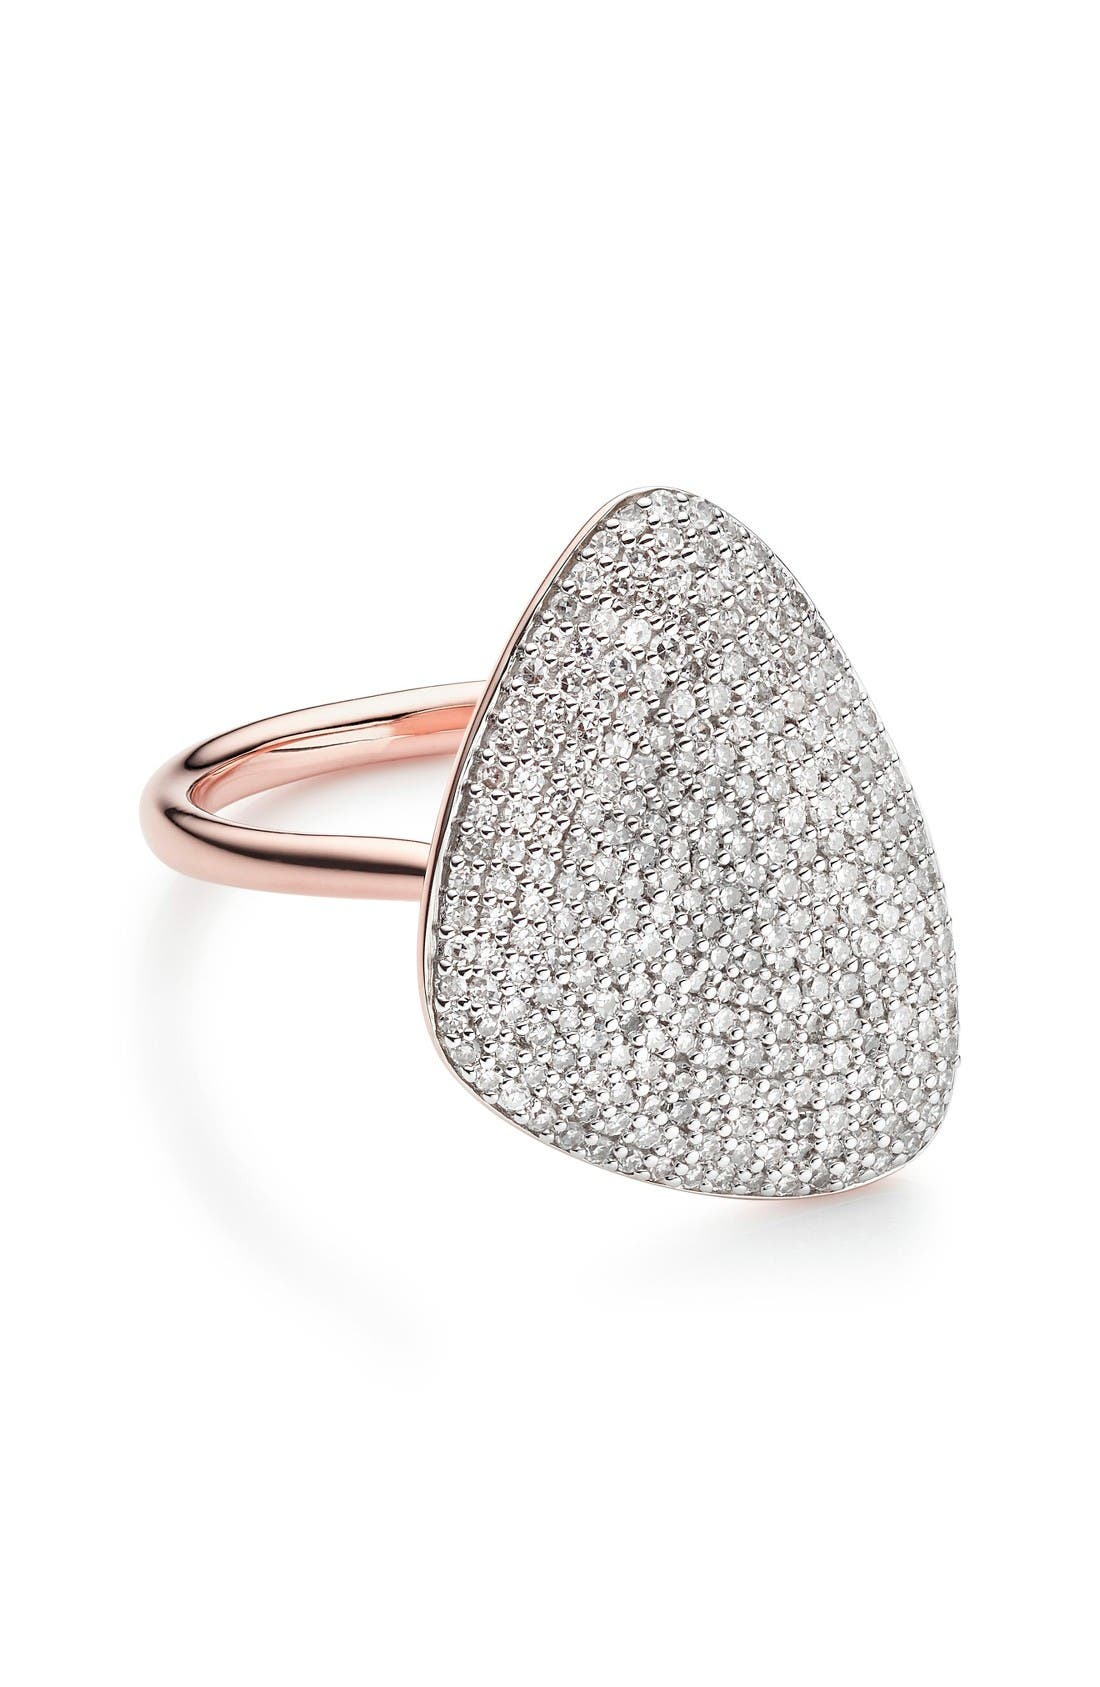 Nura Diamond Teardrop Ring,                         Main,                         color, Rose Gold/ Diamond